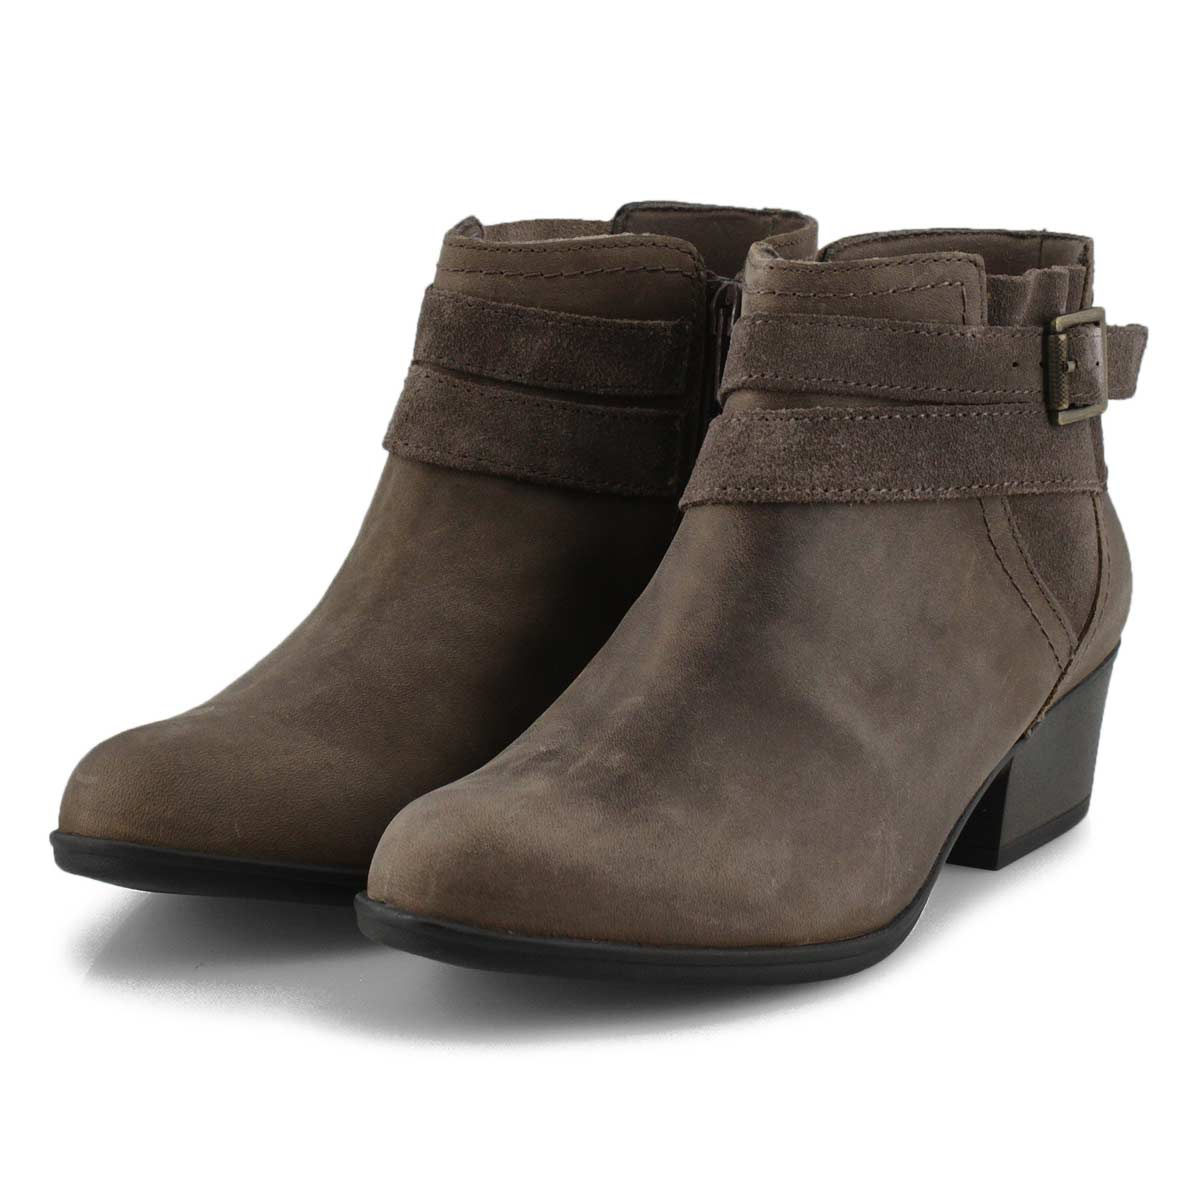 Women's Adreena Show Ankle Boot - Dark Taupe